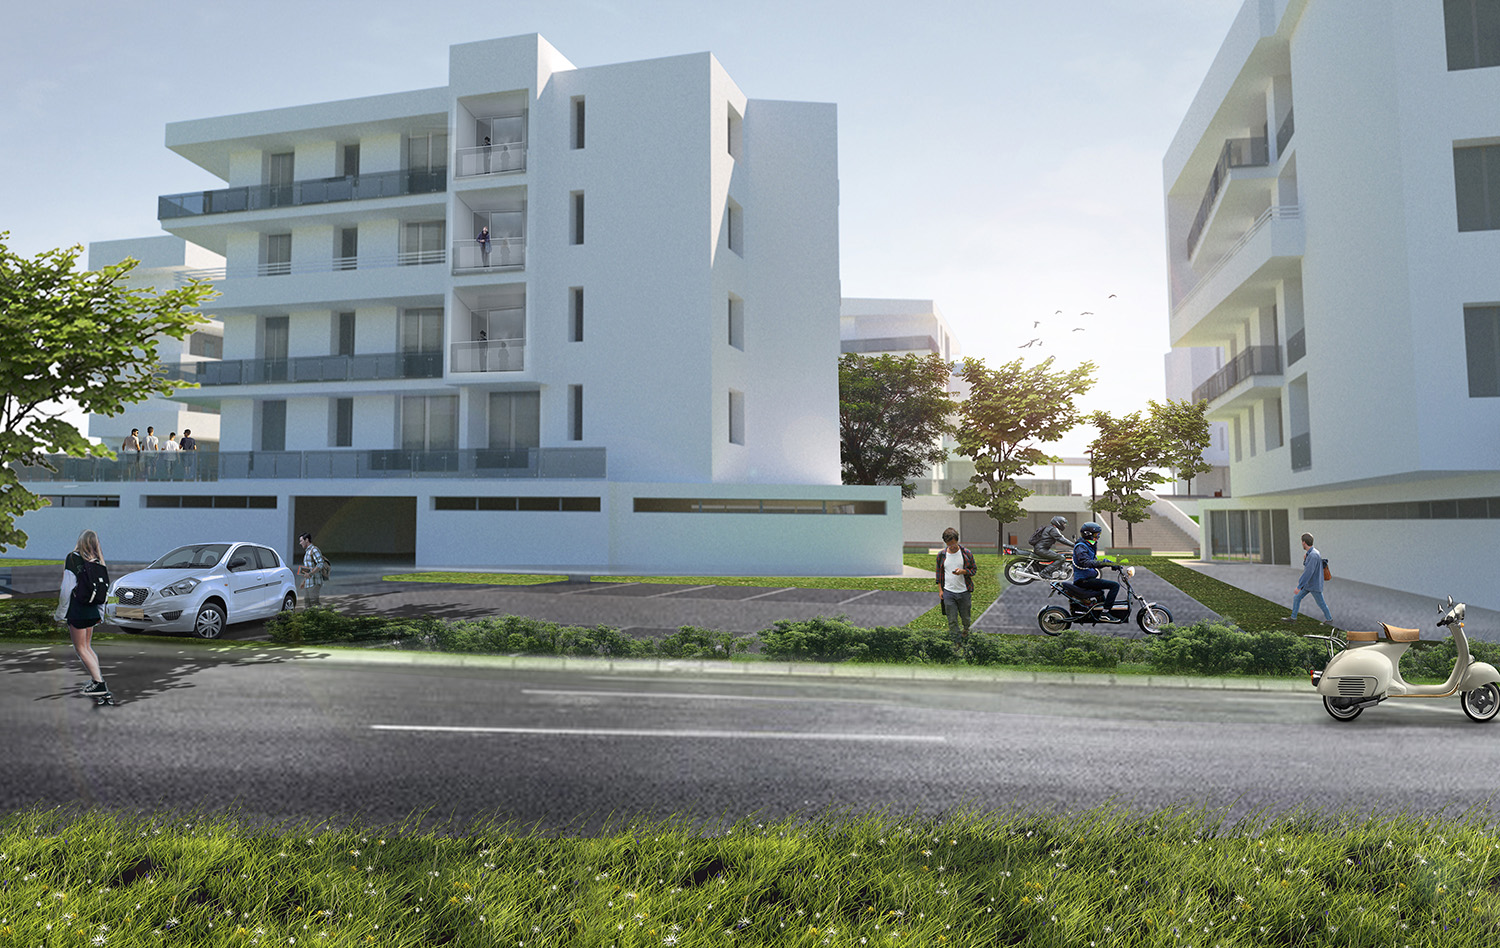 Render_Esterni_Da strada photo © 2019 by GBA Studio srl / Gianluca Brini - Architetto Bologna - Via Andrea Costa 202/2 http://www.gbastudio.it/